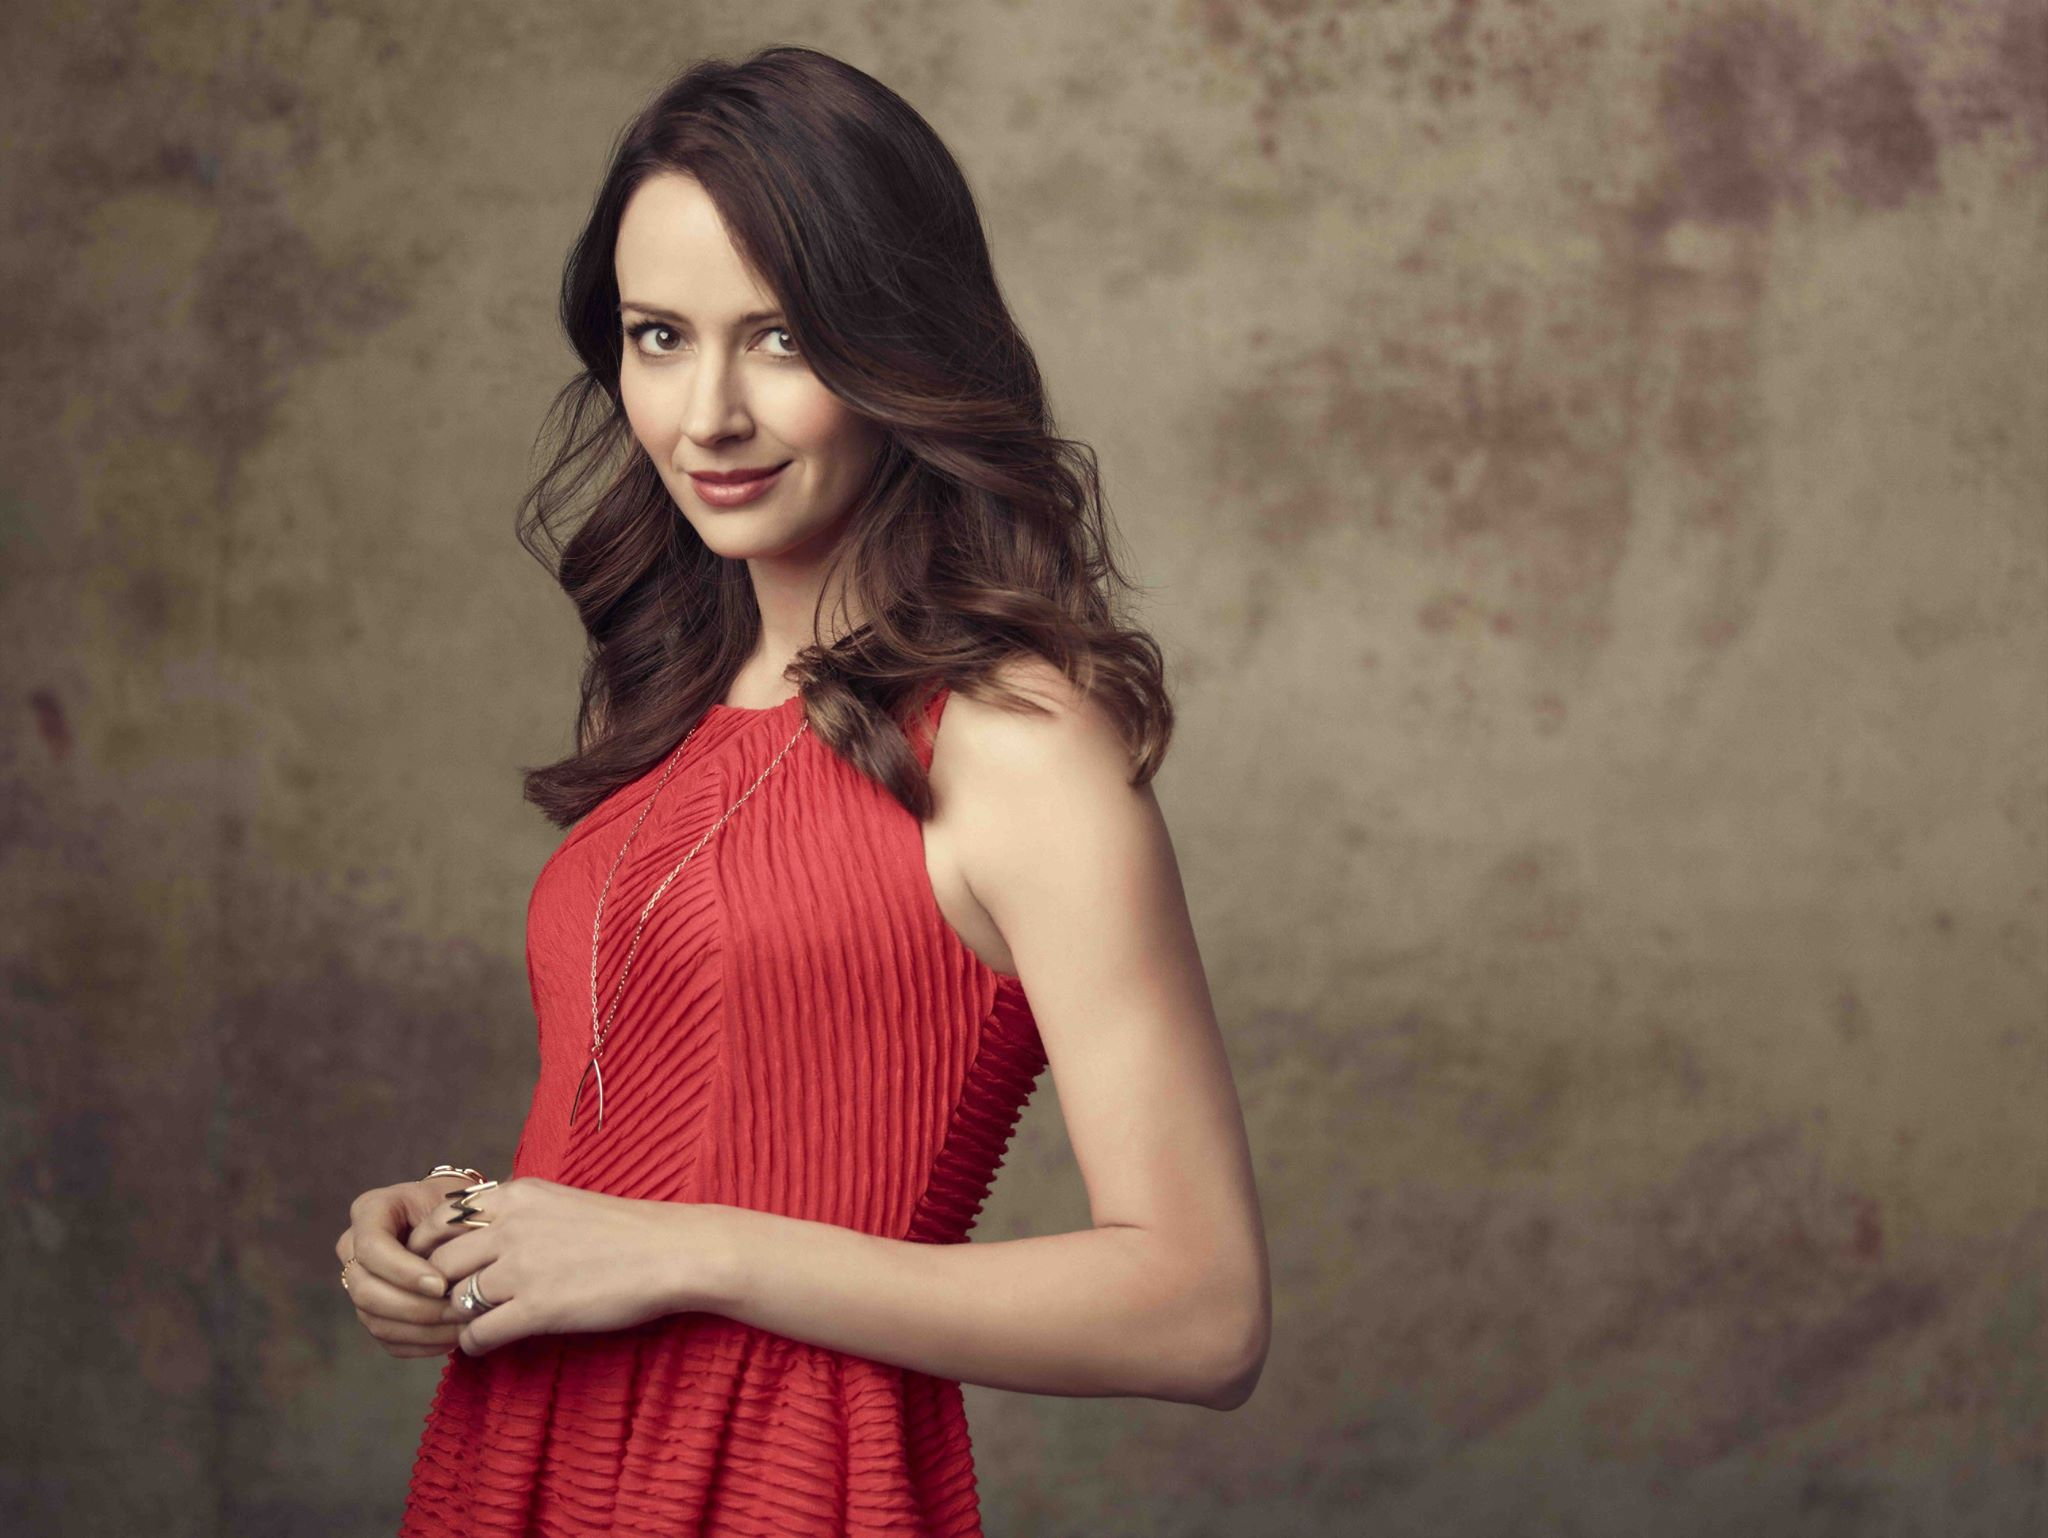 amy acker hd desktop wallpapers | 7wallpapers